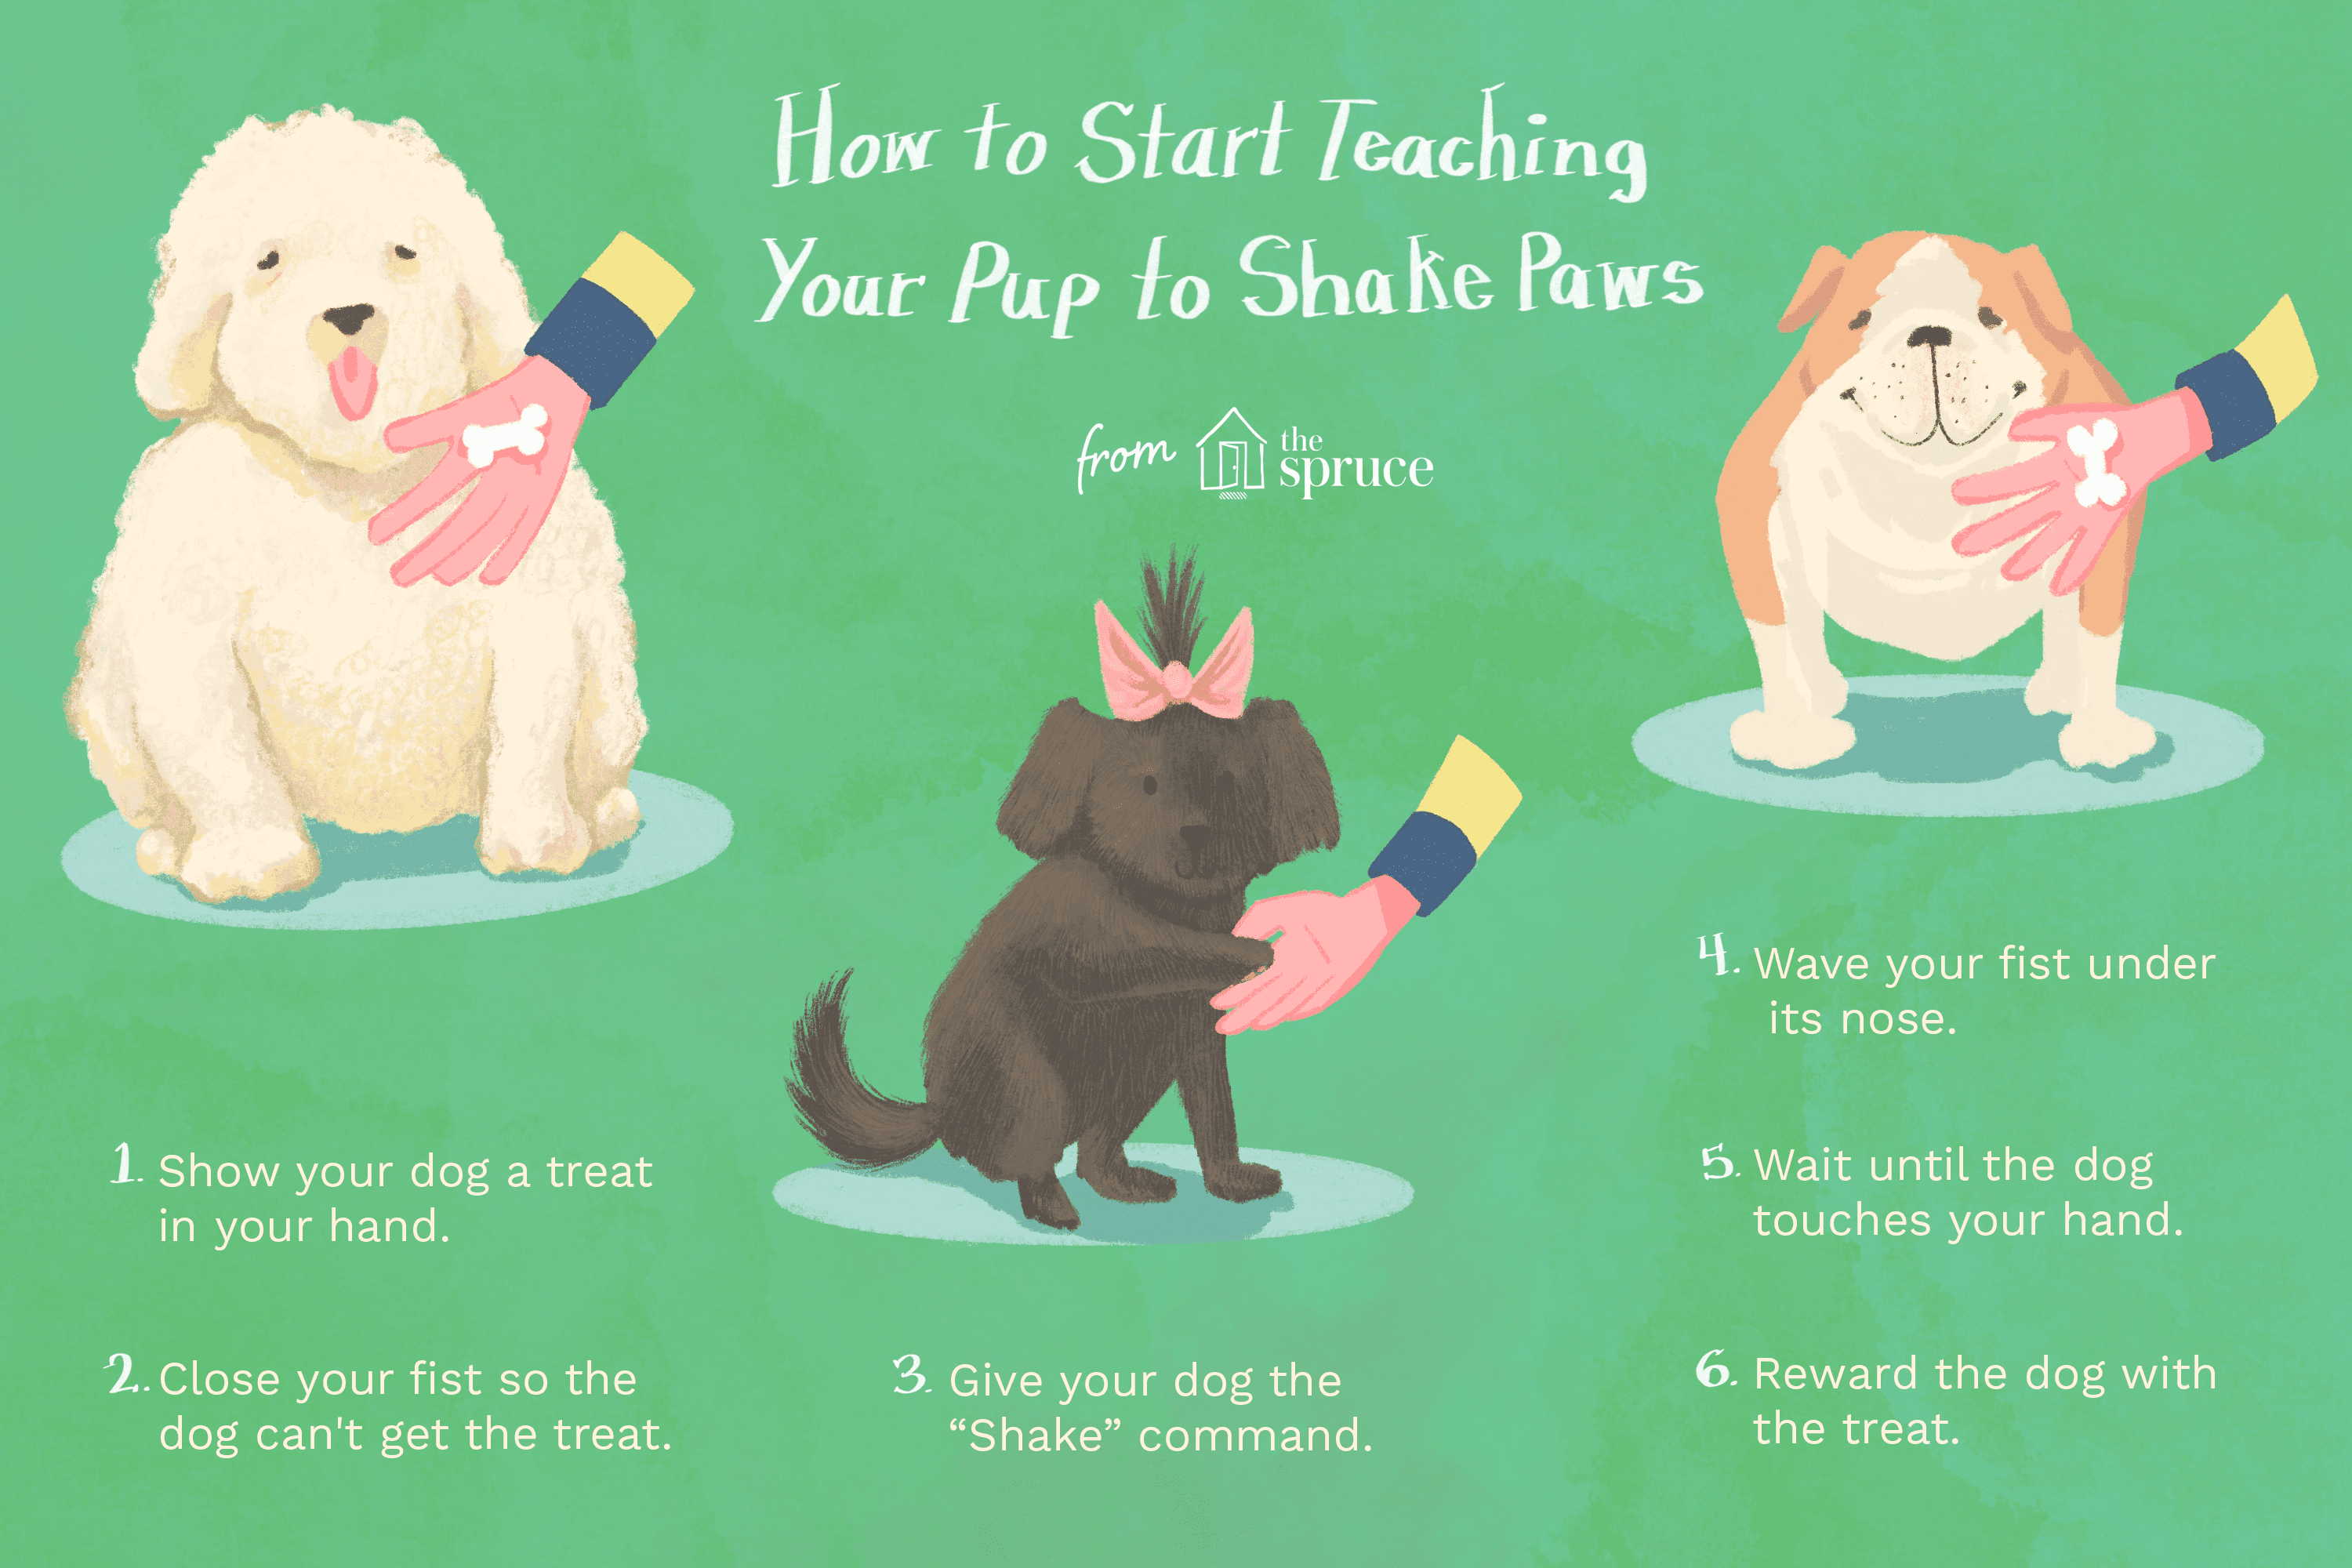 An illustration showing how to train a dog to shake paws